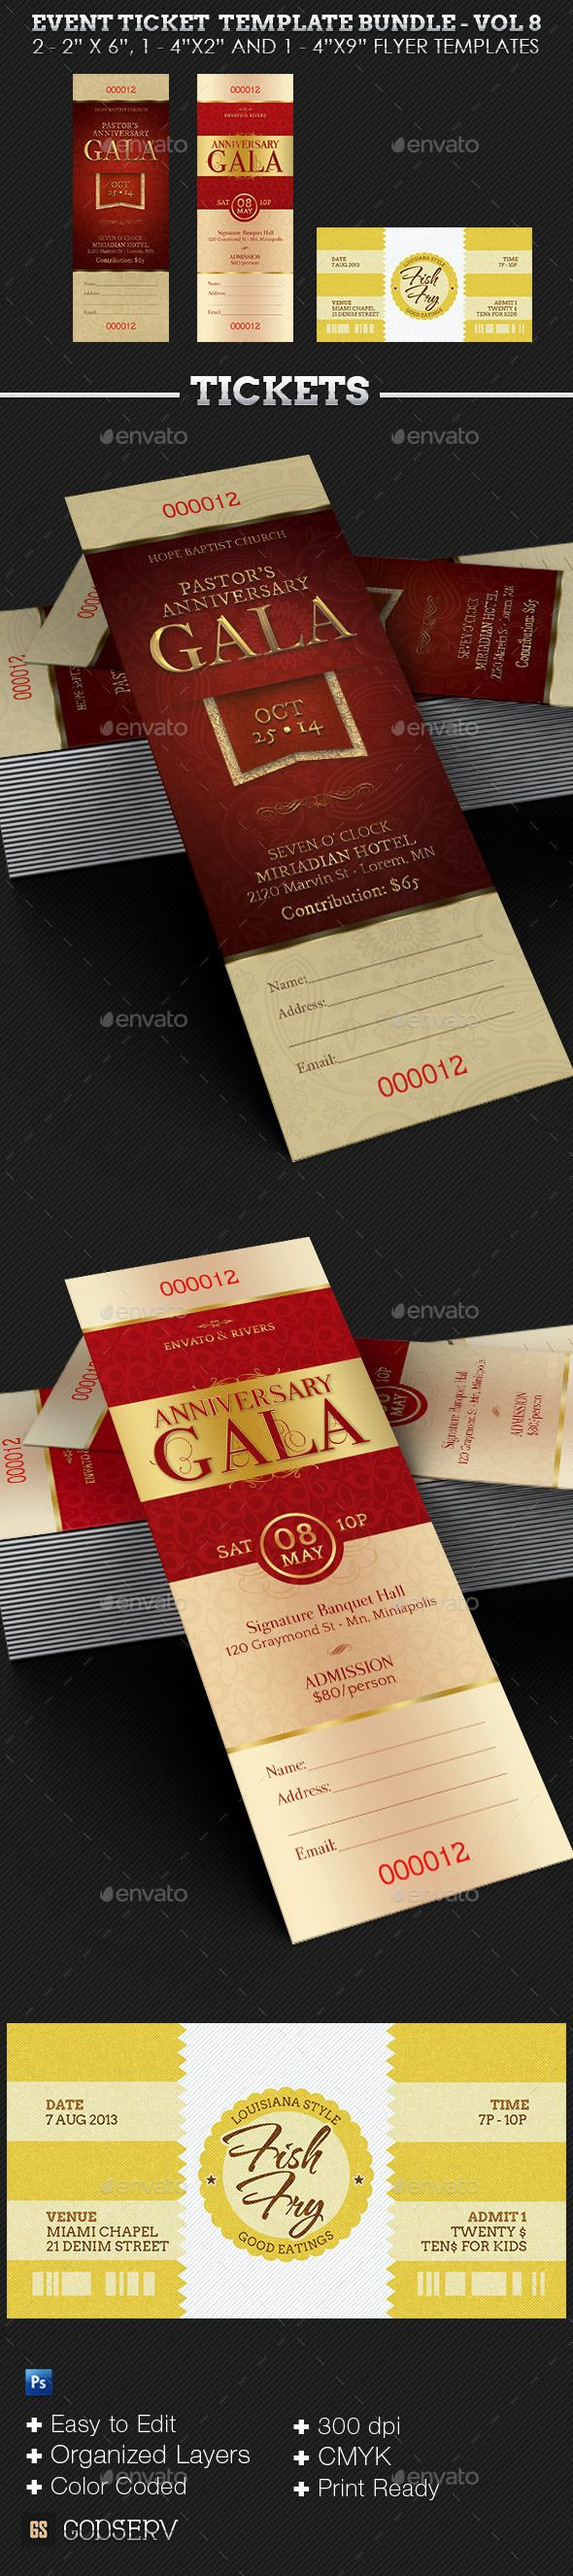 best images about best photoshop template bundles event ticket template bundle volume 8 is geared for the pastor anniversary galas church